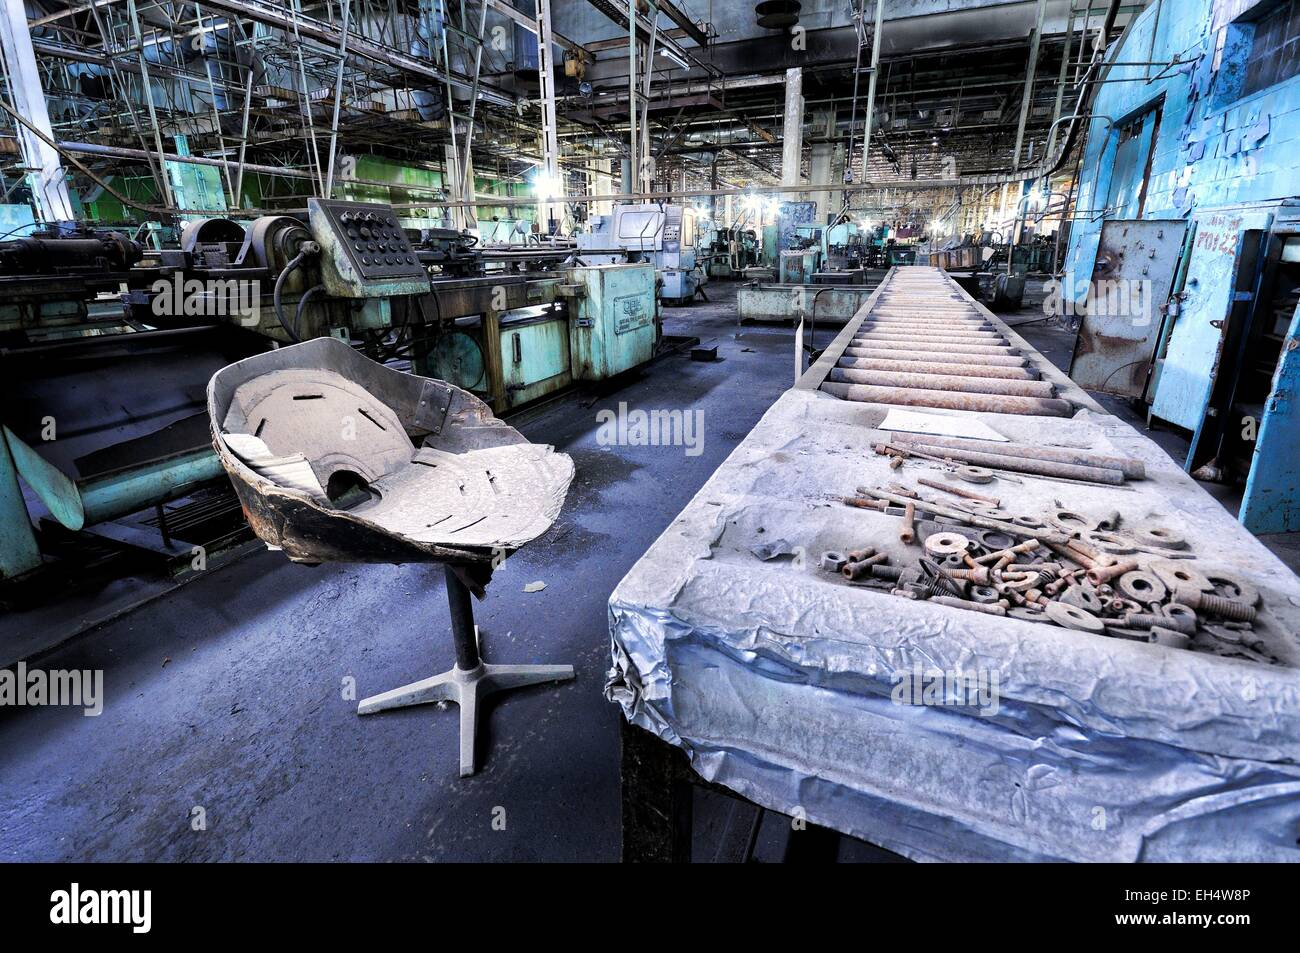 Azerbaijan, Baku, abandoned air conditioner factory which used to employ 6000 workers in the 1970s until the production - Stock Image